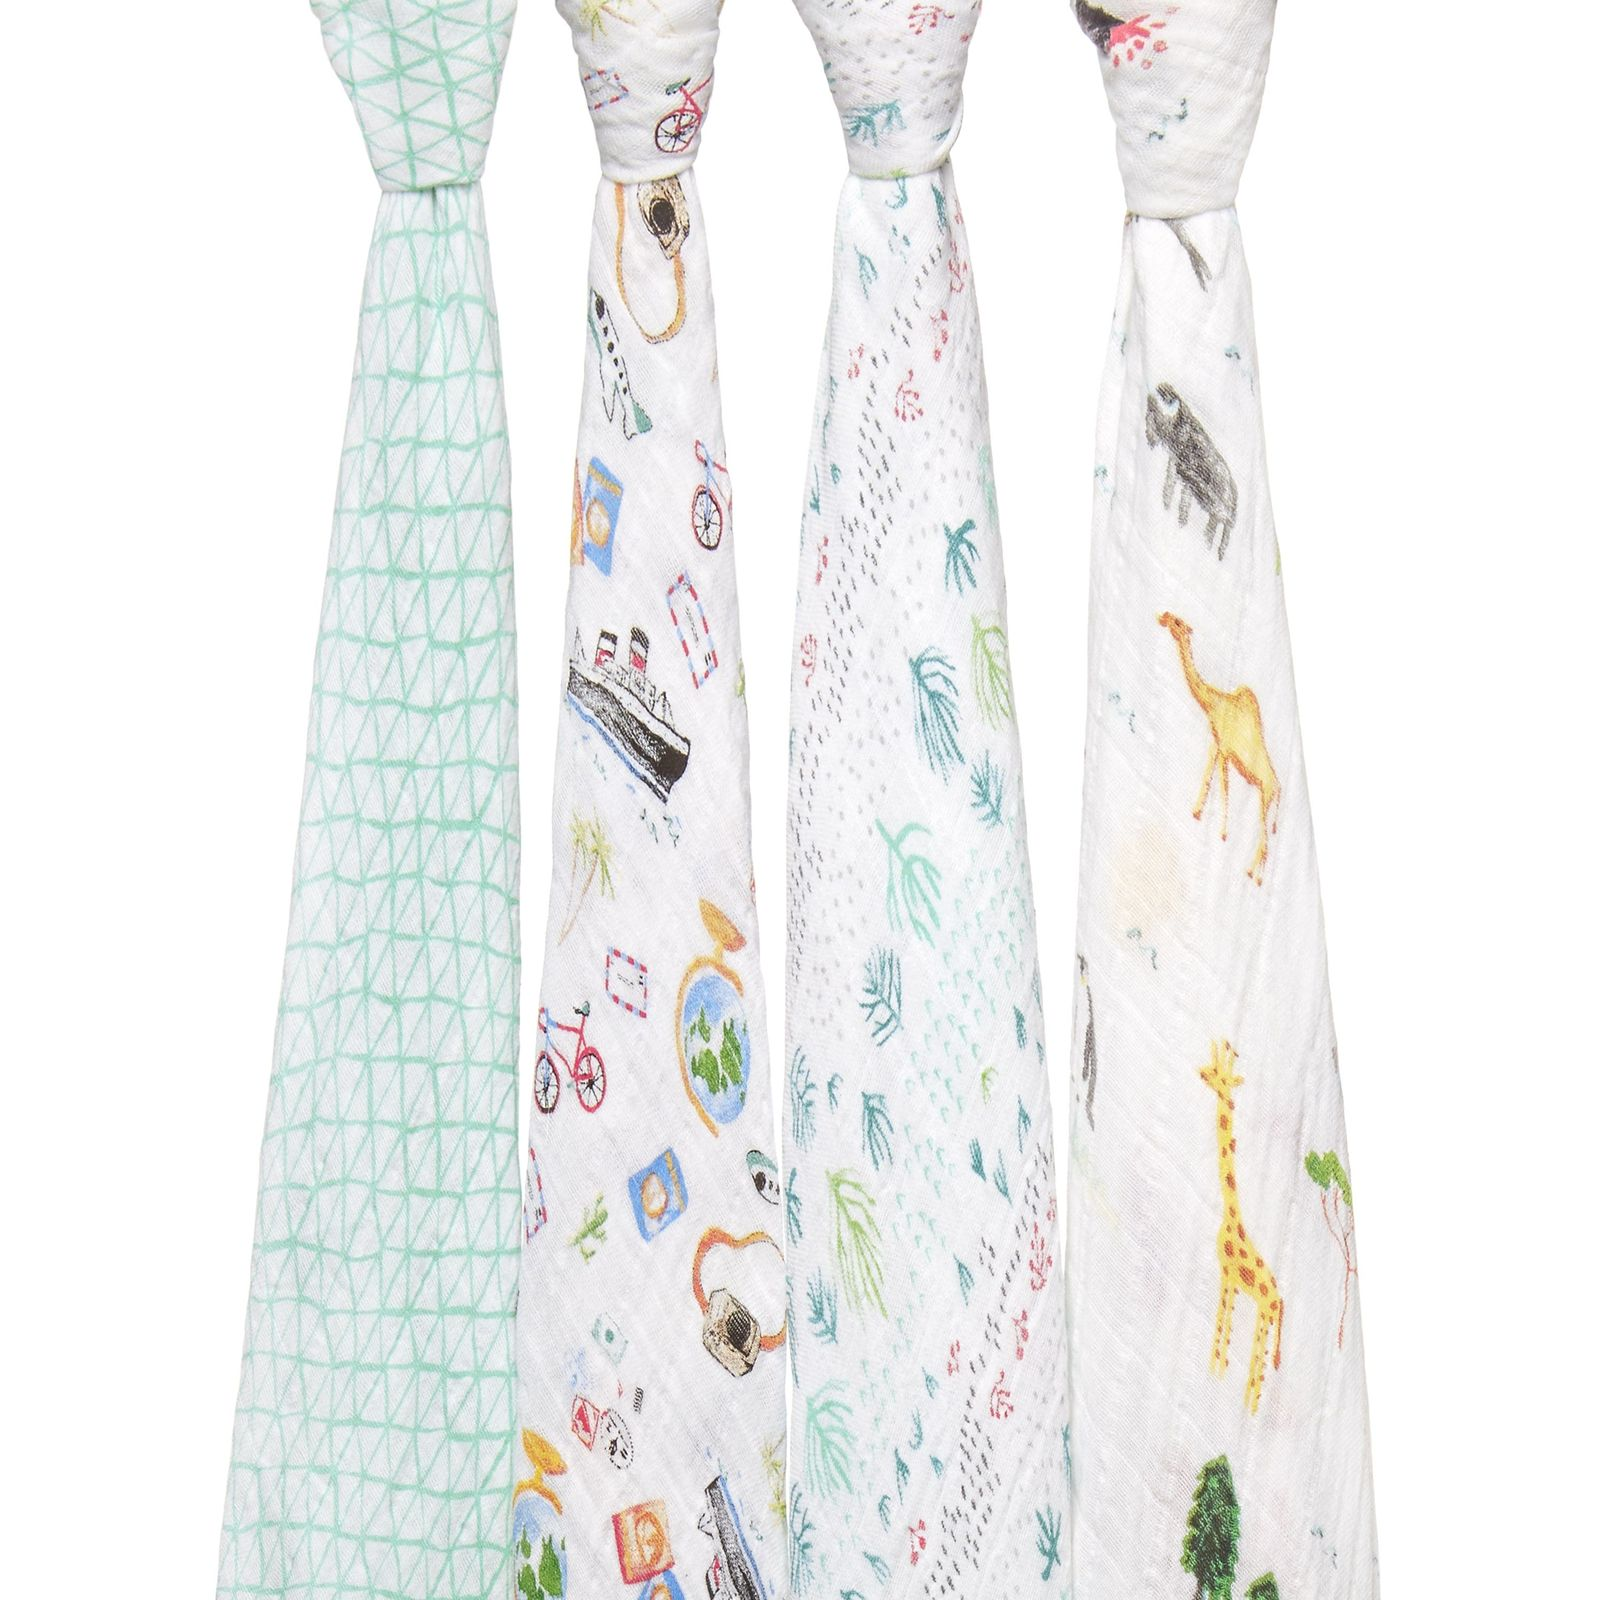 Aden + Anais: Classic Swaddle - Around The World (4 Pack) image